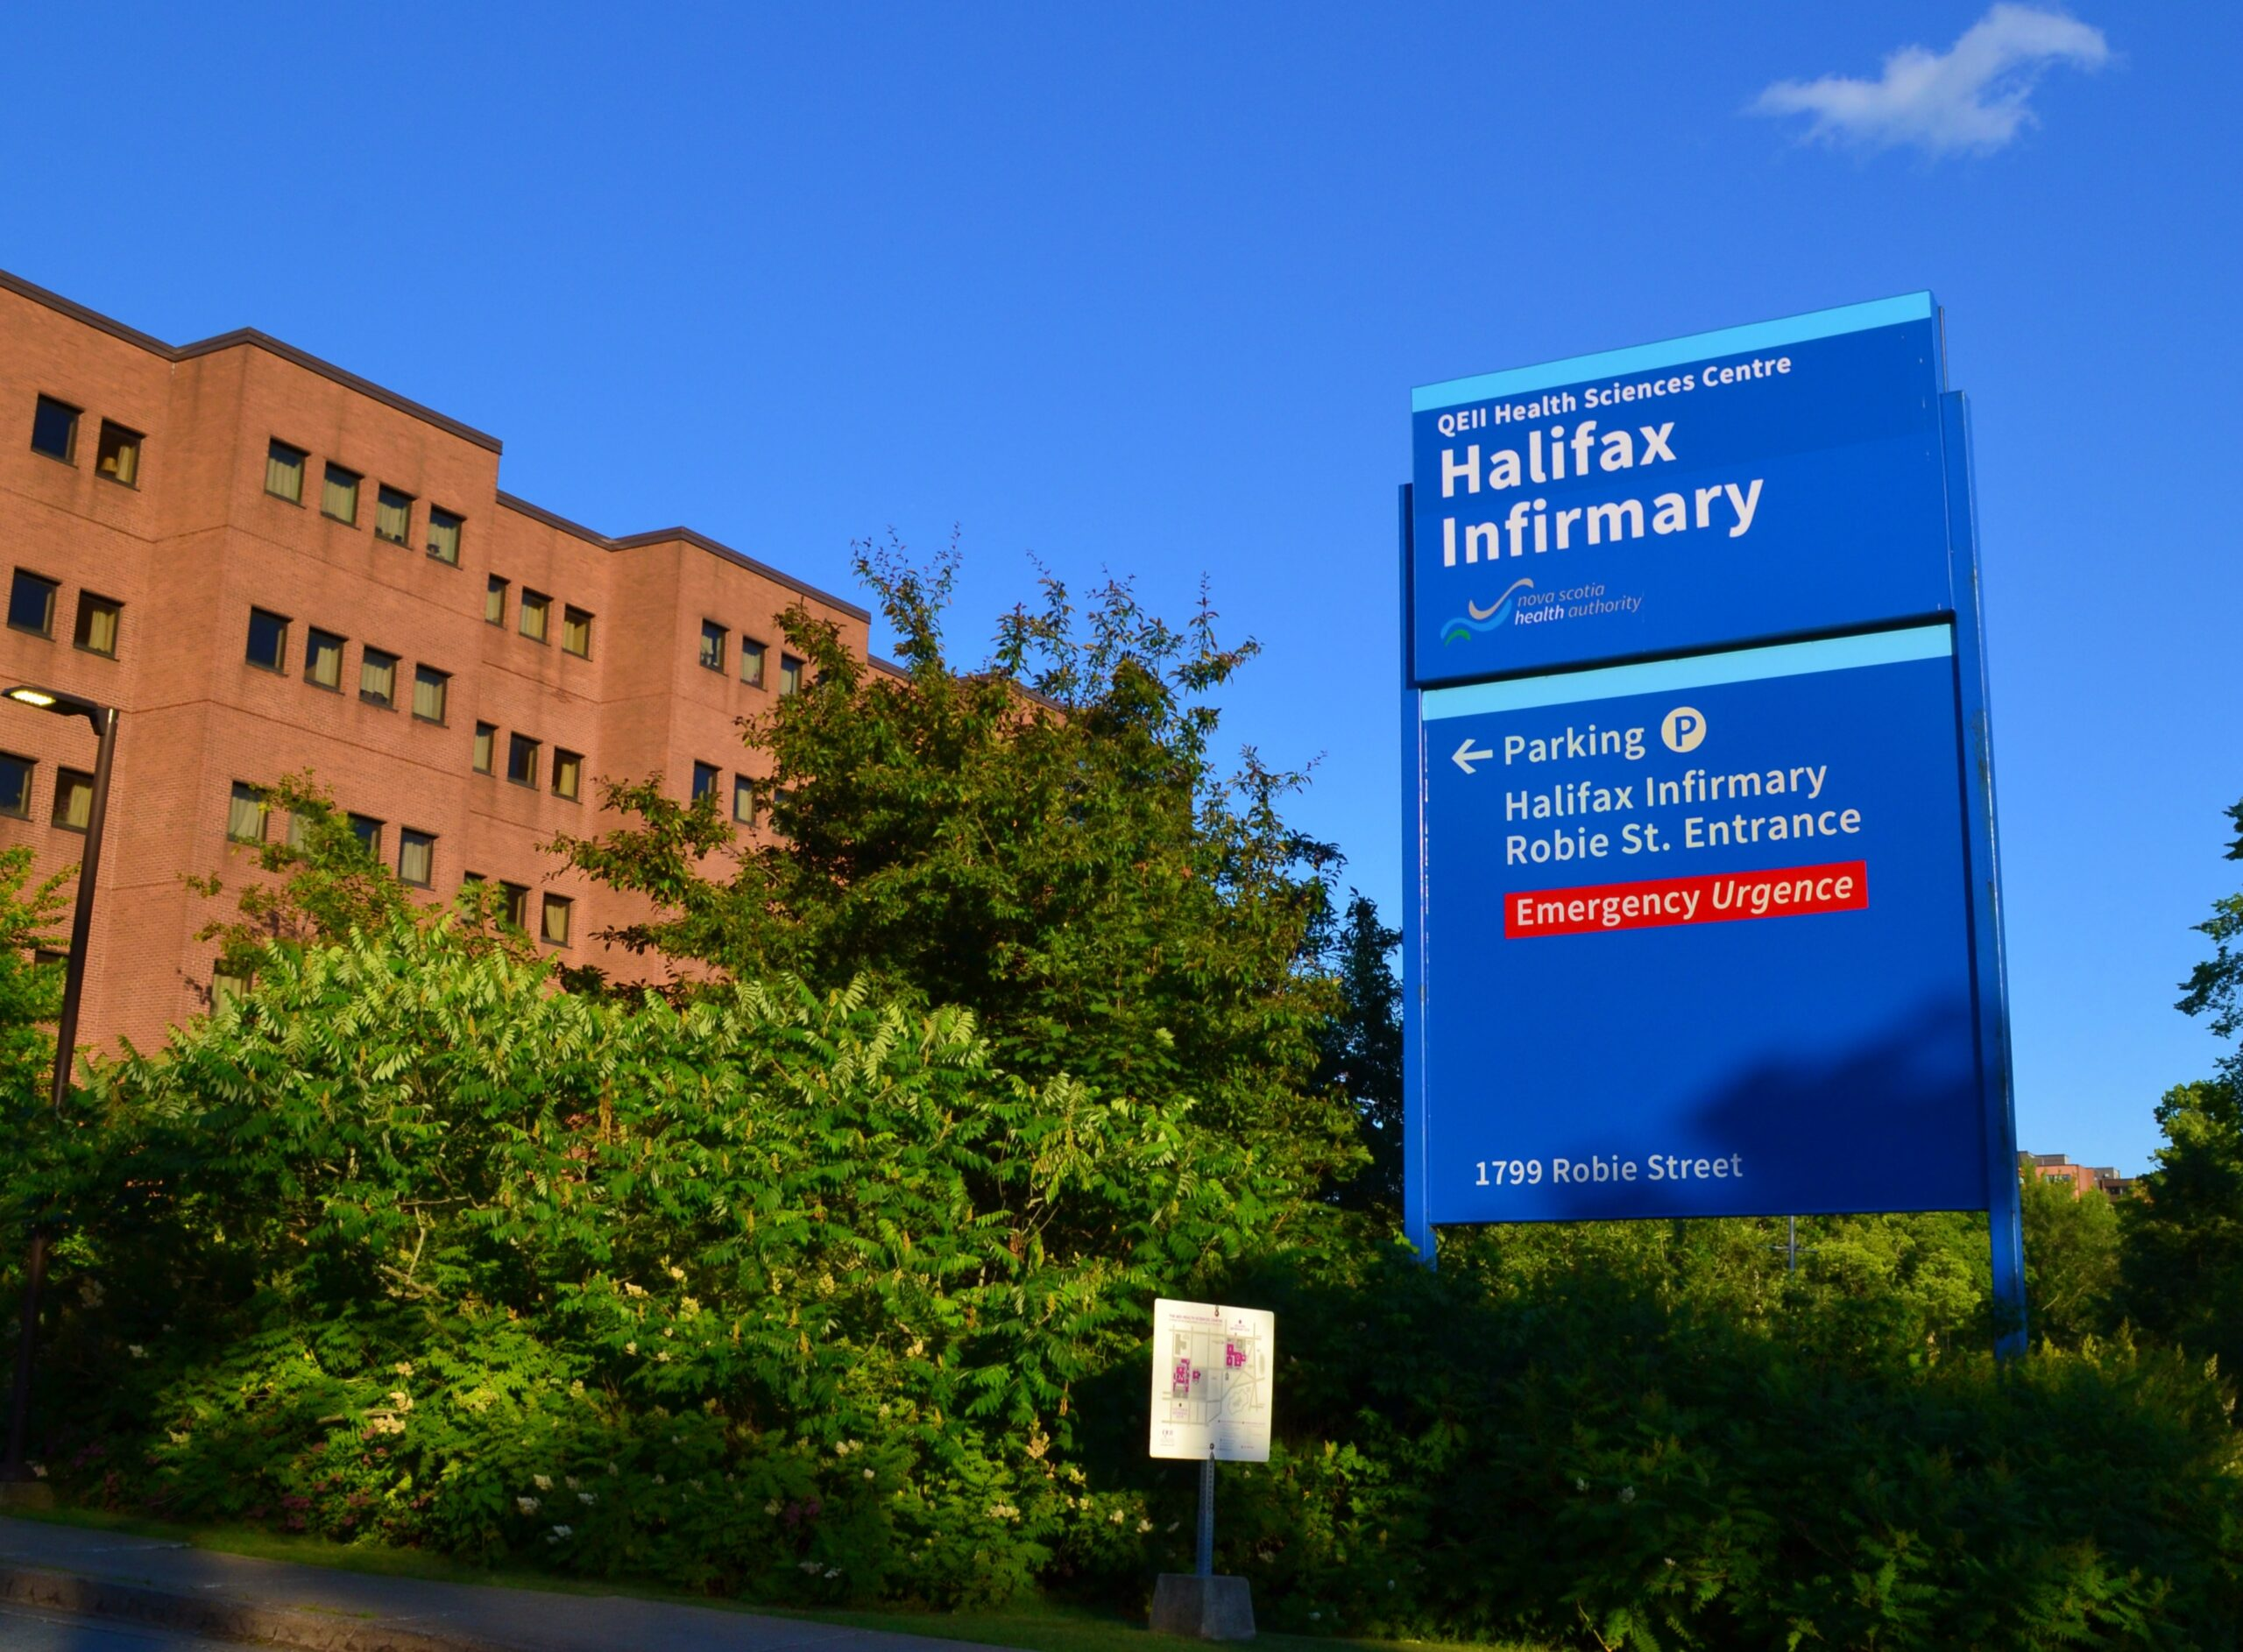 Bright blue Halifax Infirmary signage against a blue sky.